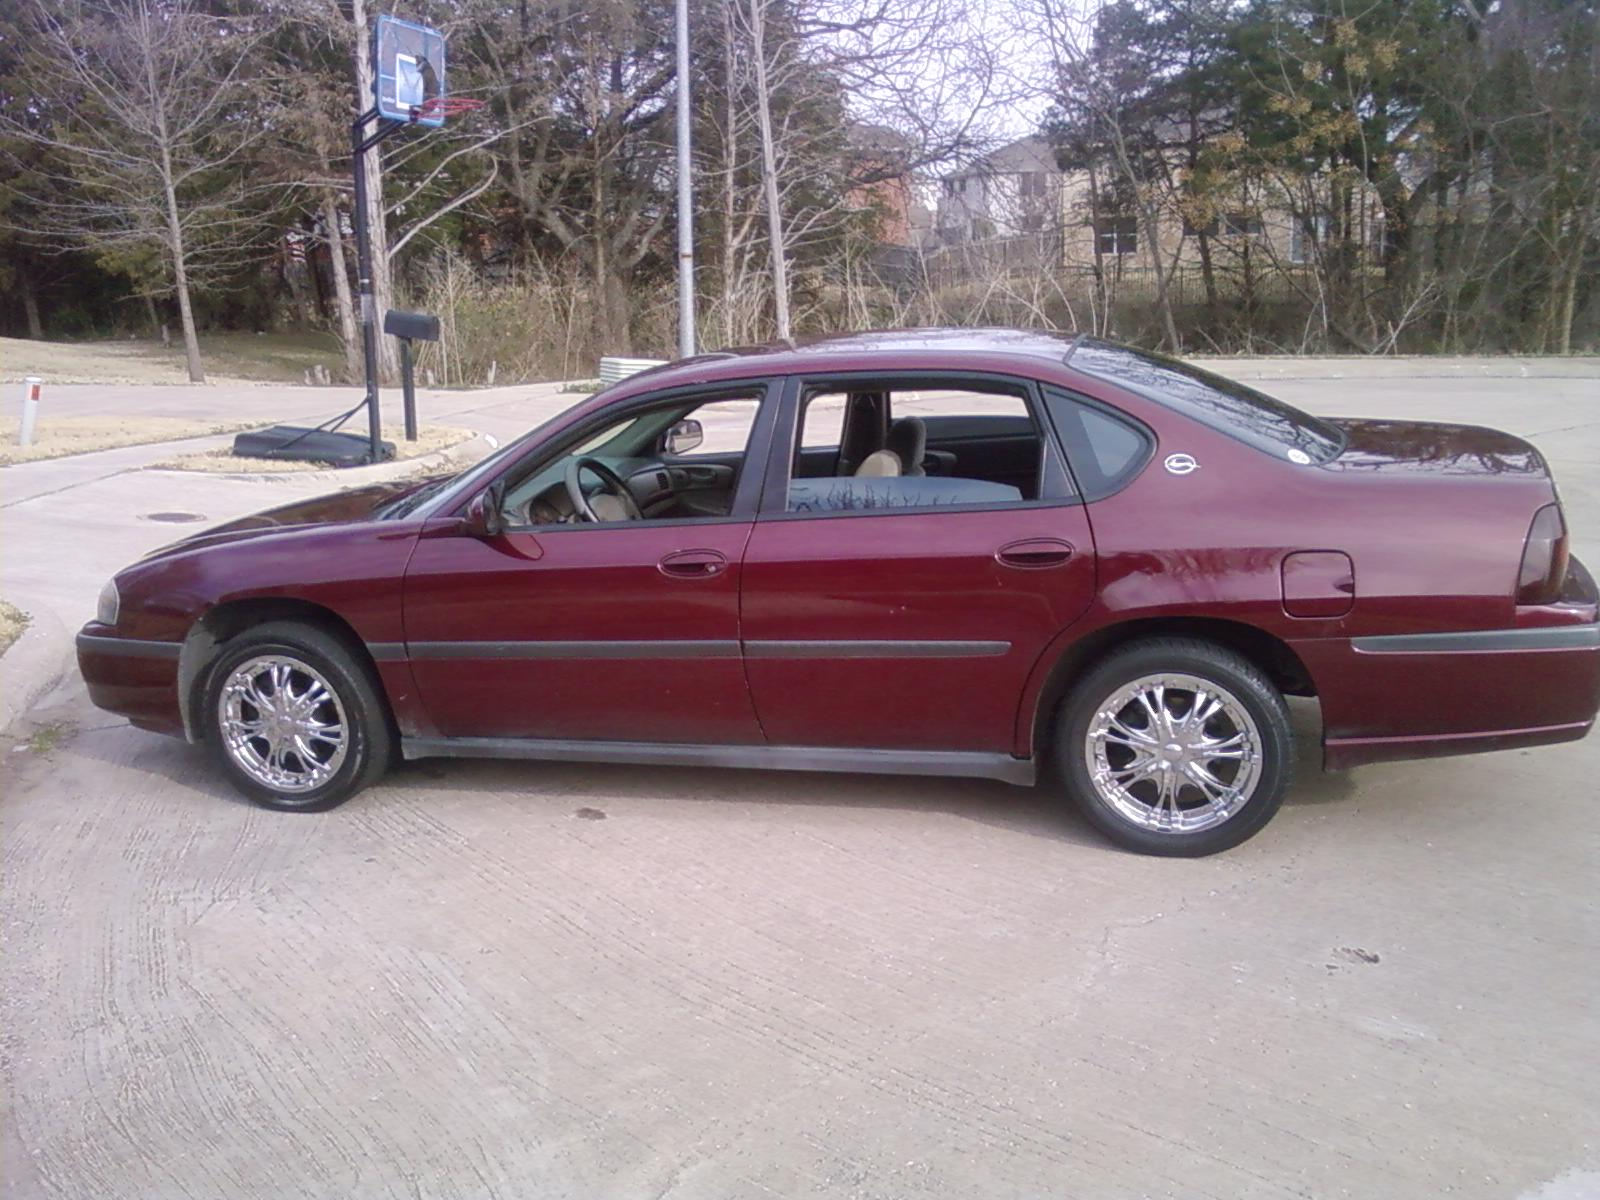 2008 Chevy Malibu Used 2000 Chevrolet Impala - Other Pictures - CarGurus